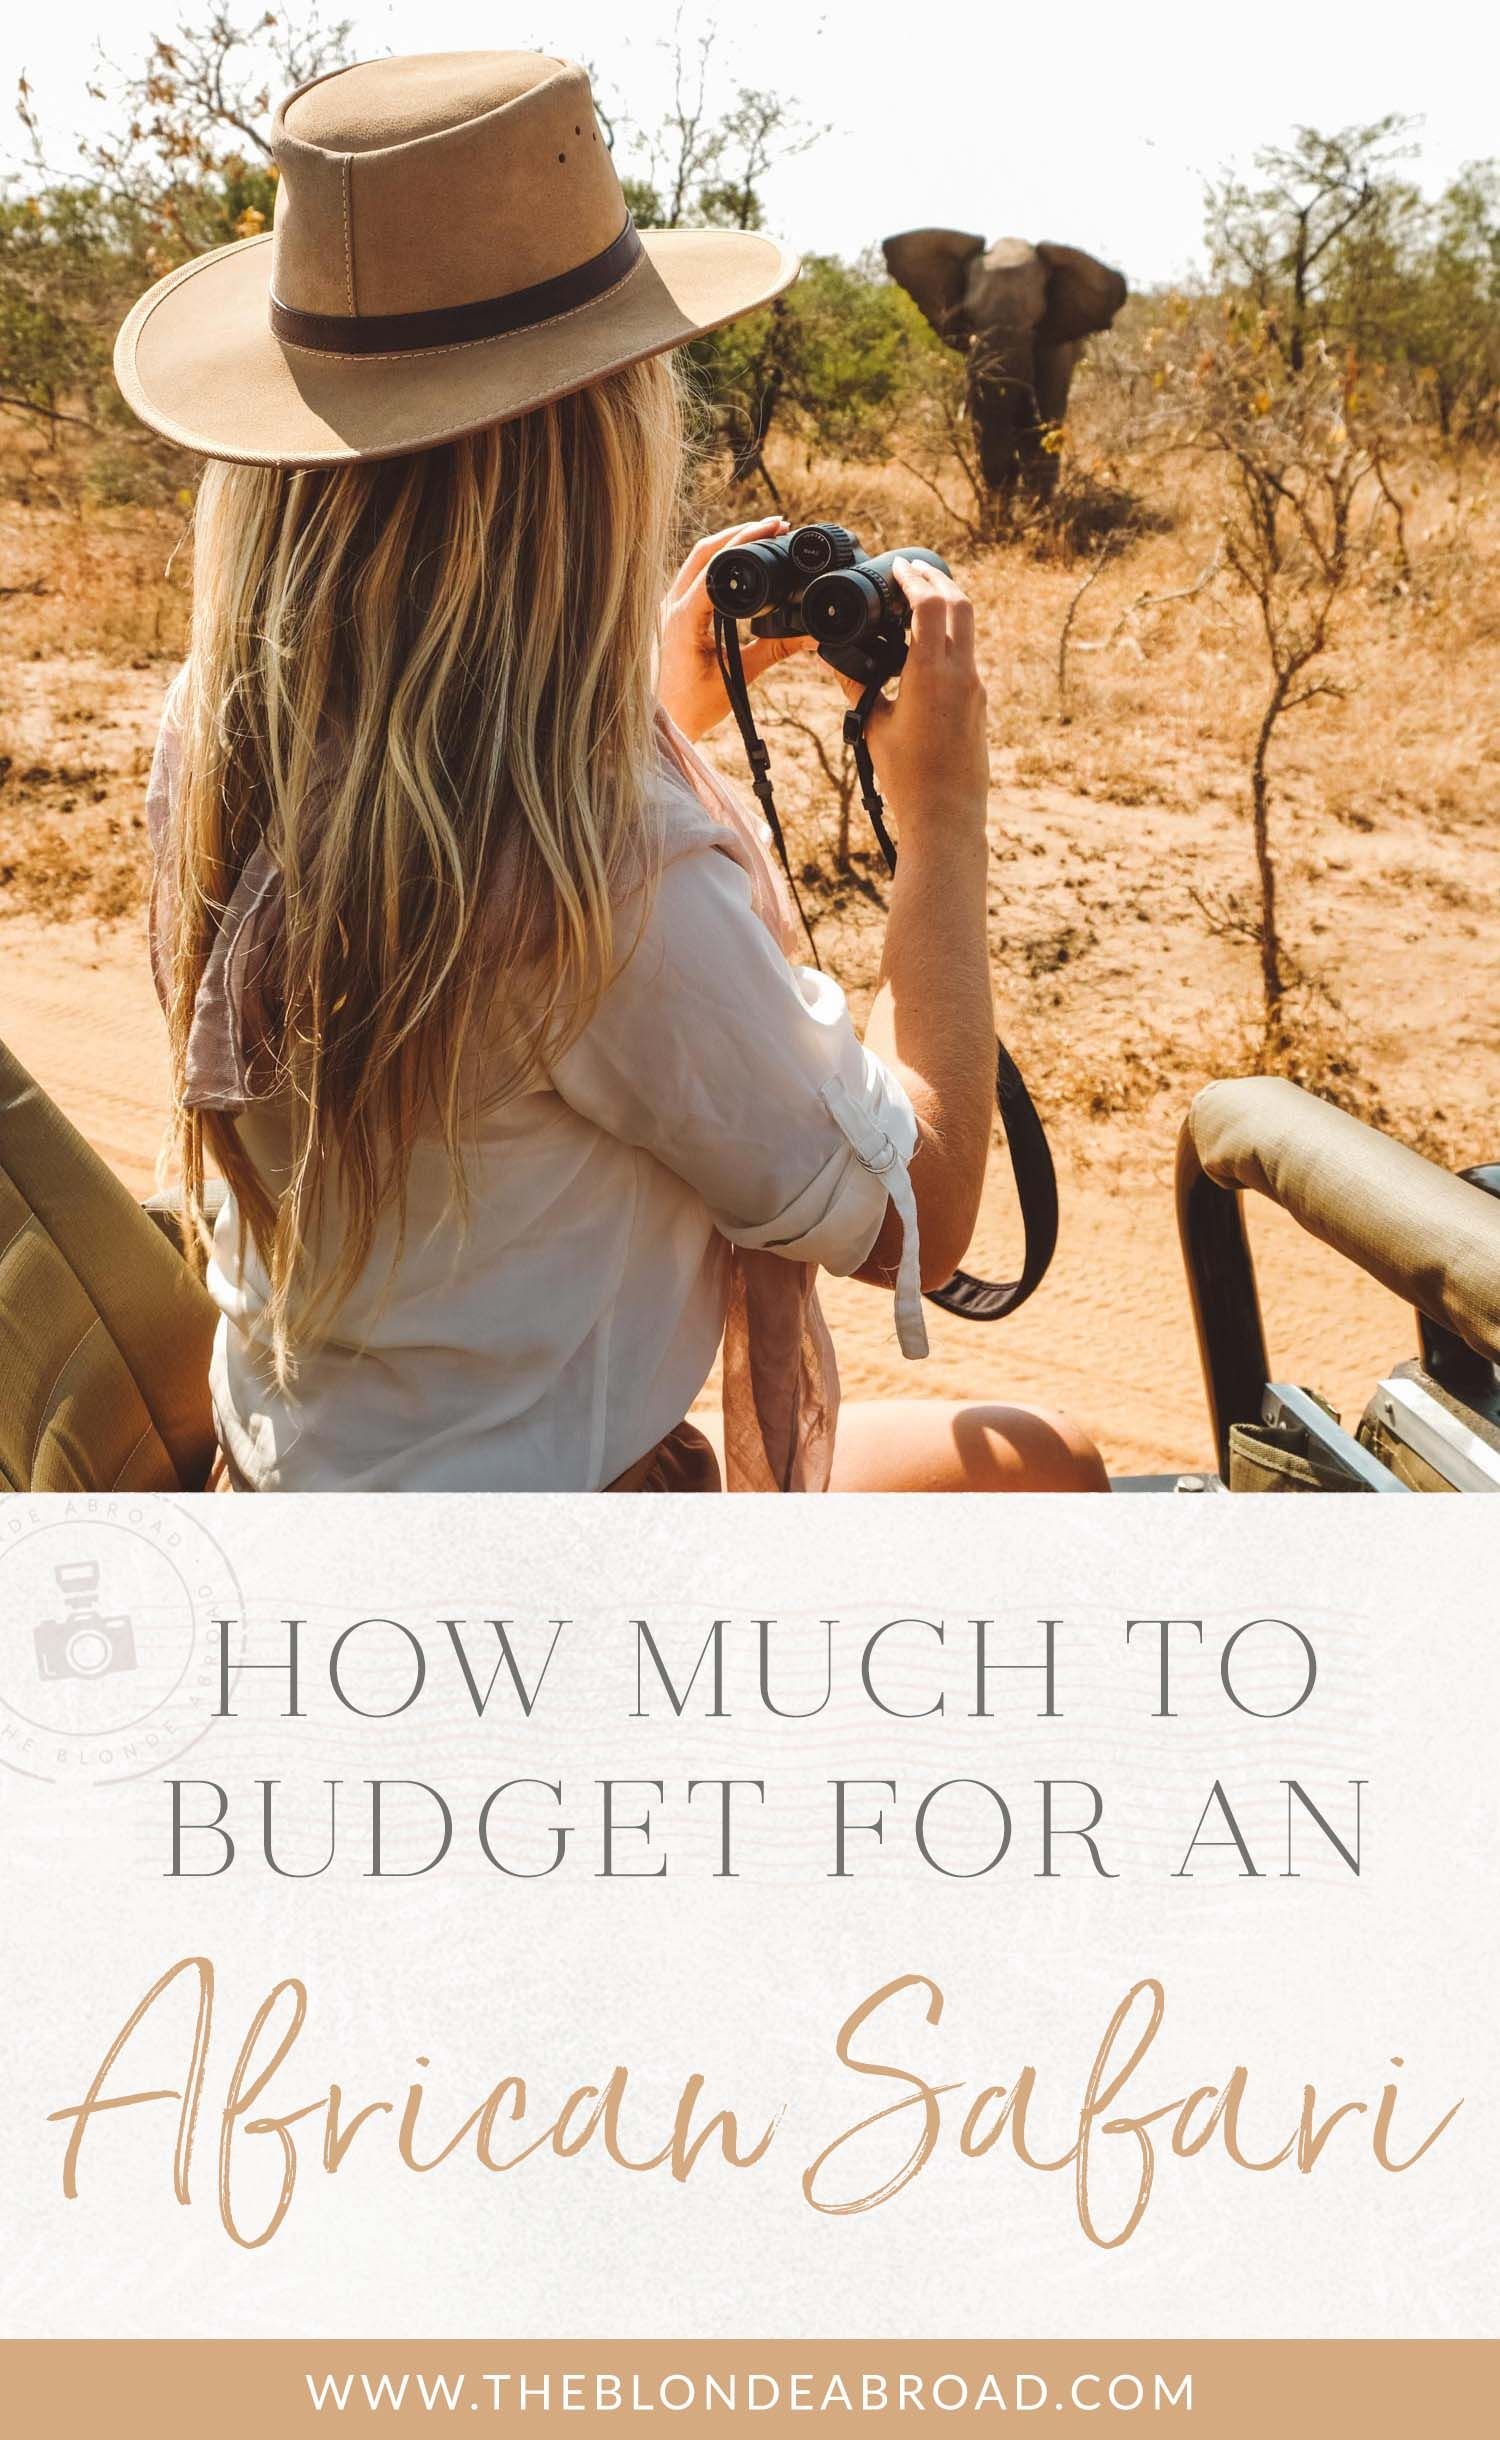 how much to budget for an african safari